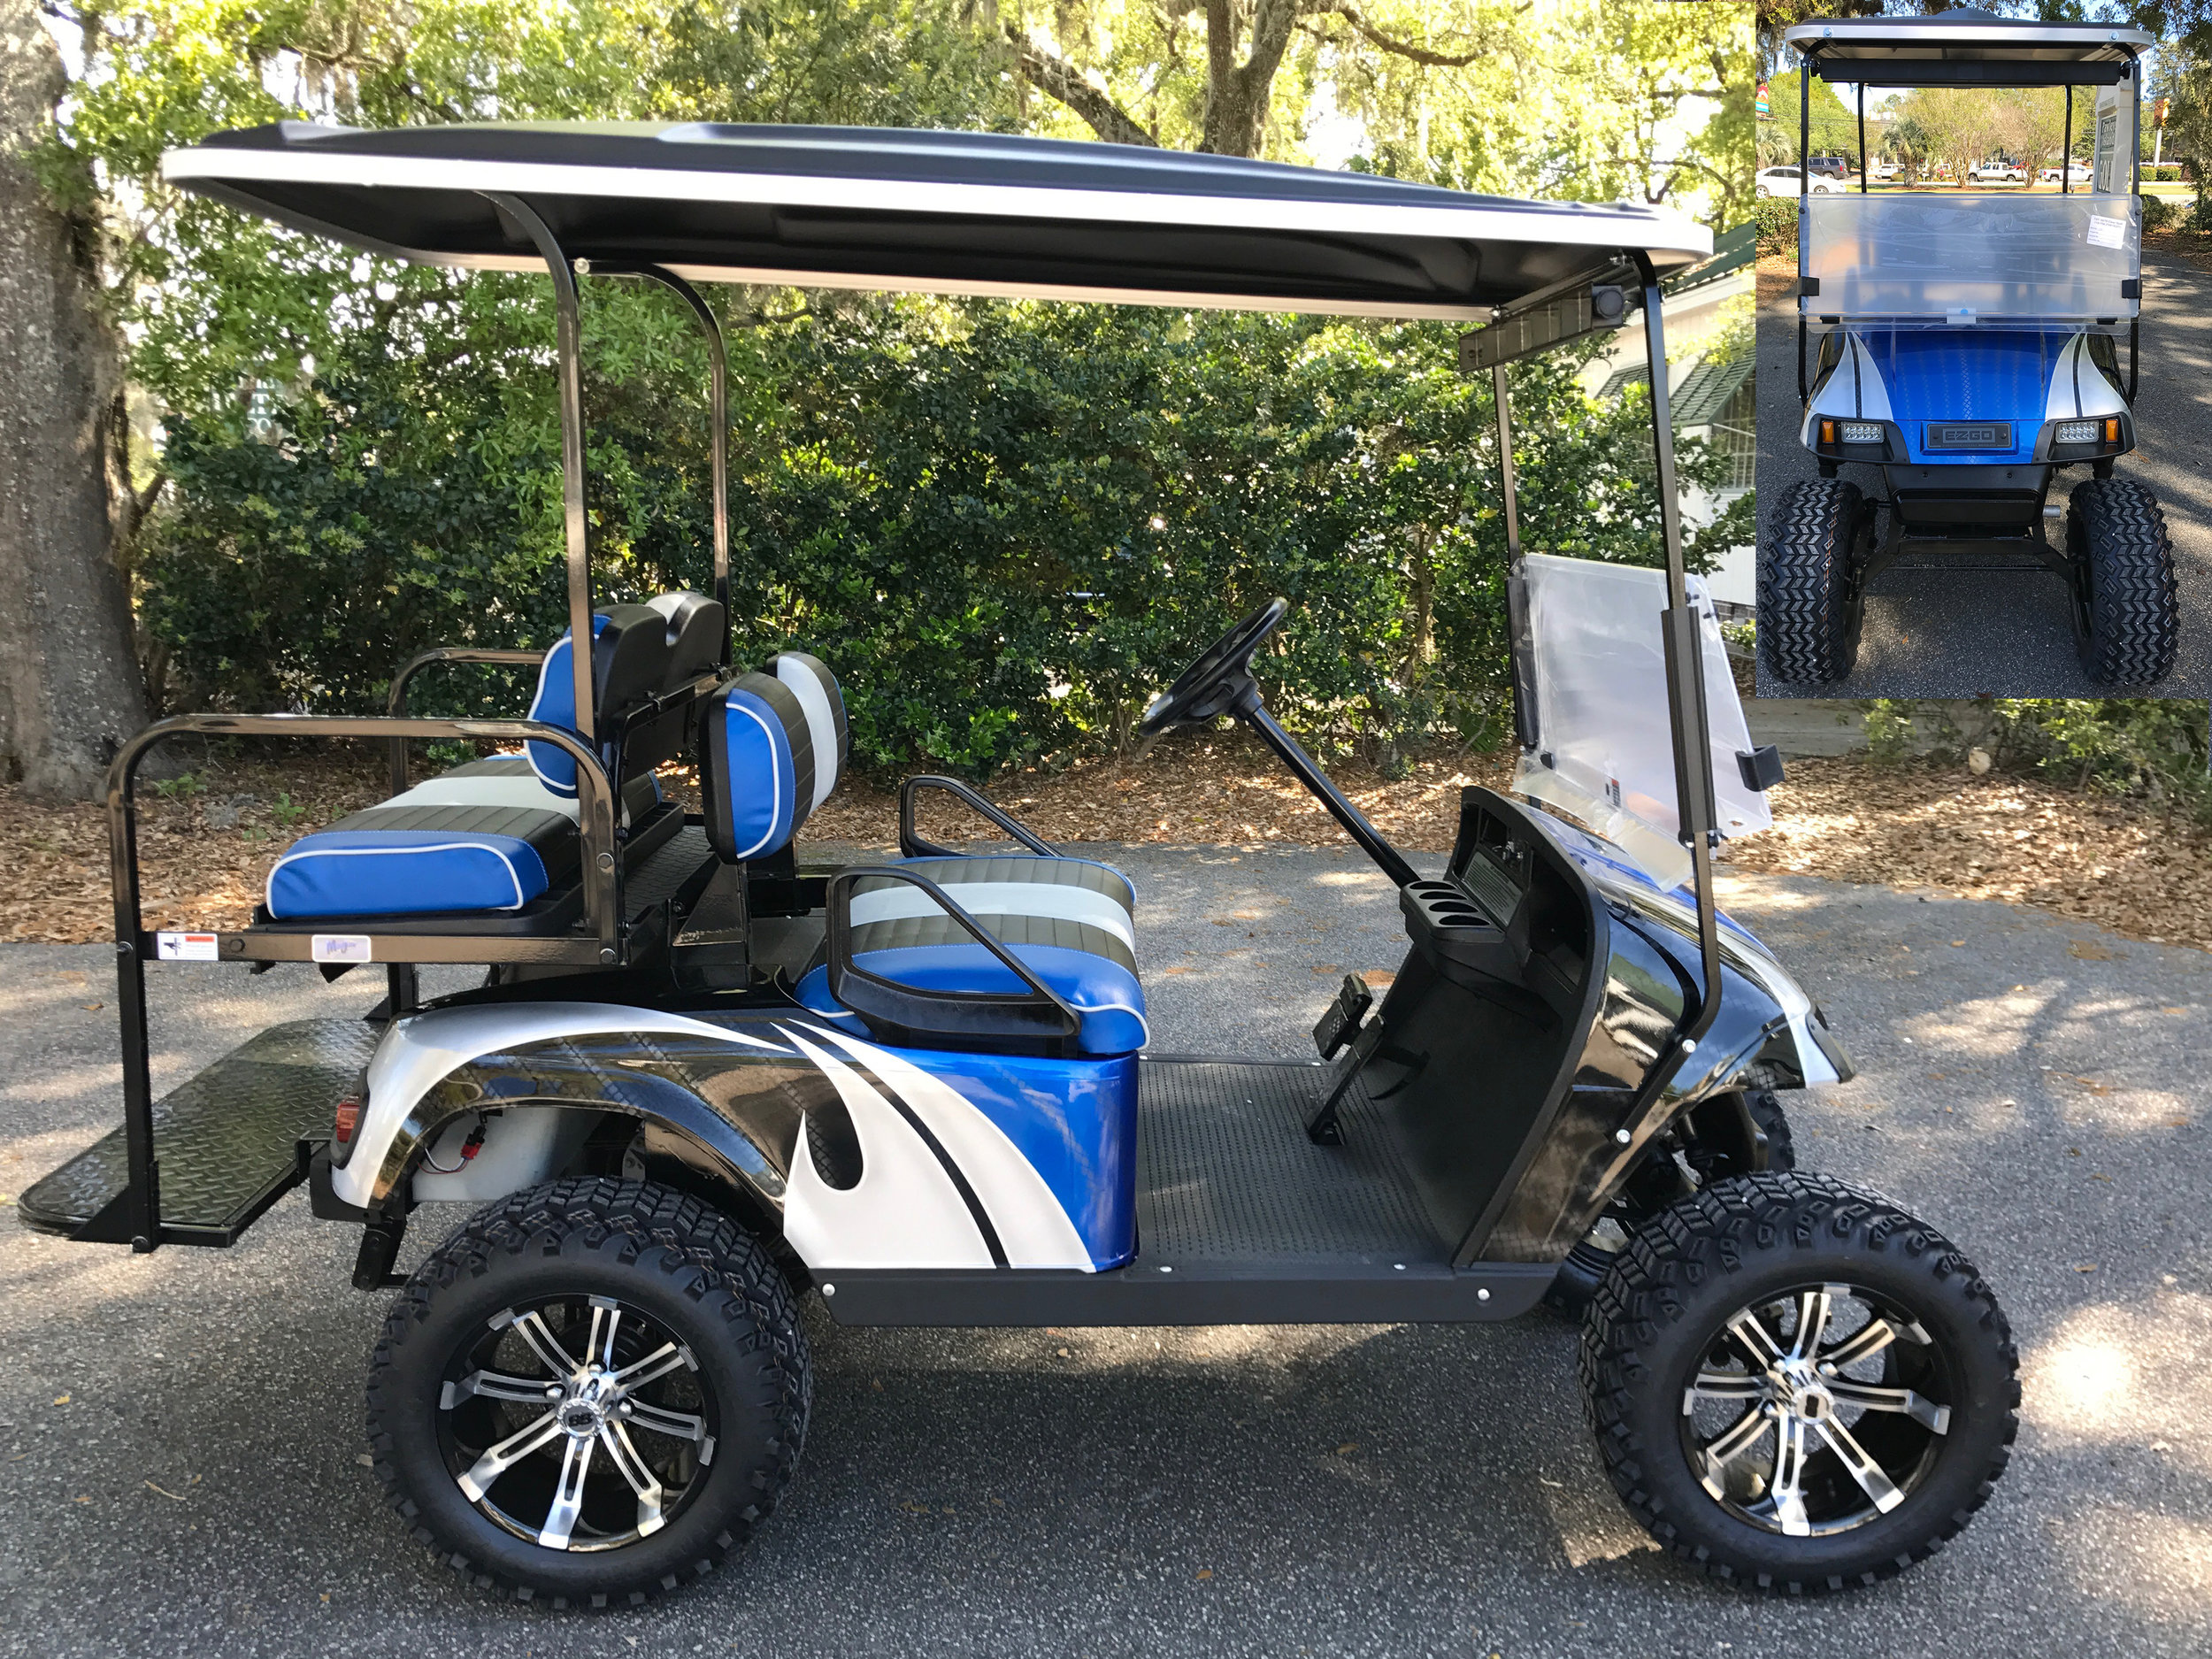 Viper Blue Swirl EZGO Lifted Cart  Viper blue/black/gray seats, black extended top, new batteries, high speed code, LED lights, Backlash (23x10x14) tires, mirror, flip windshield, and state of charge meter